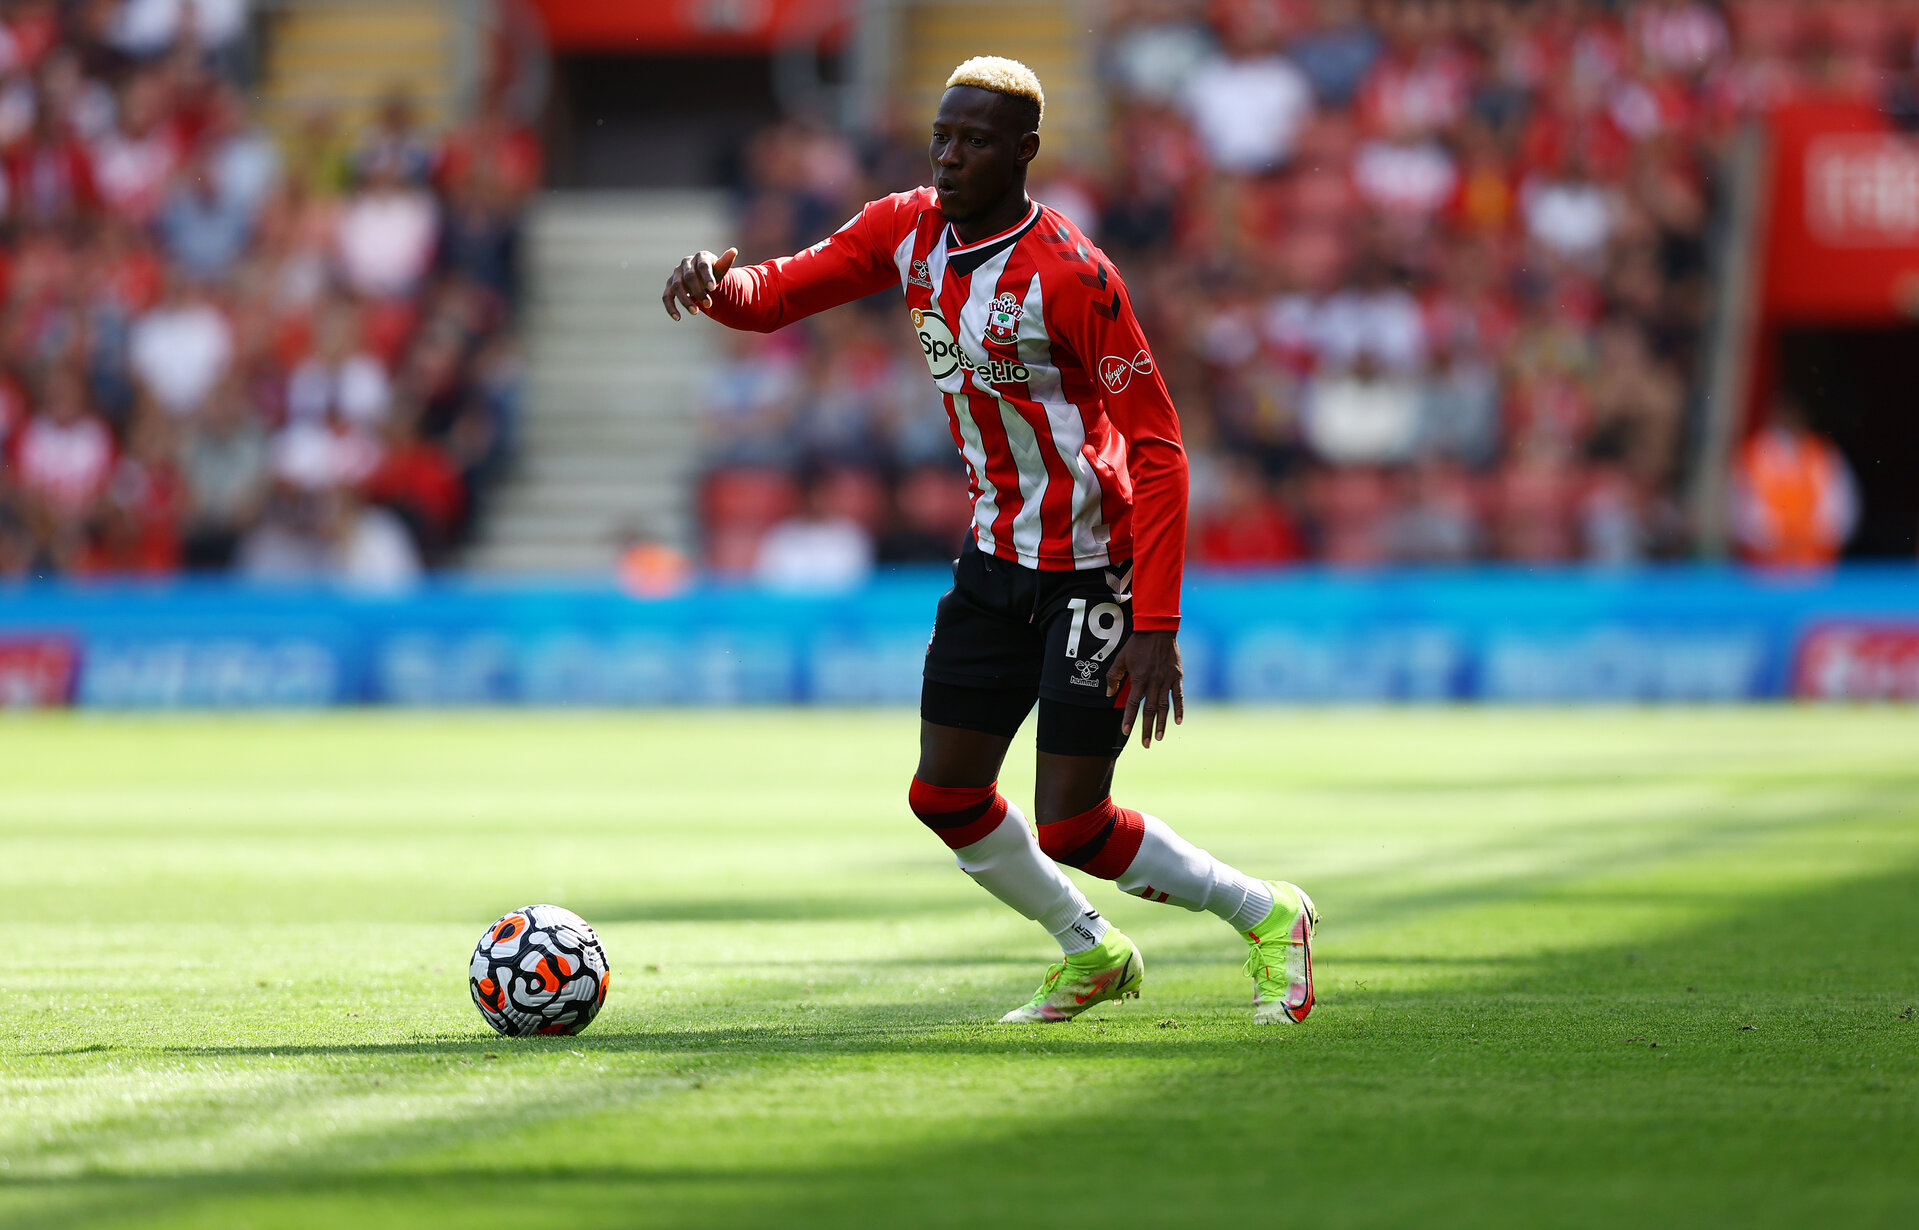 SOUTHAMPTON, ENGLAND - SEPTEMBER 11: Moussa Djenepo of Southampton during the Premier League match between Southampton  and  West Ham United at St Mary's Stadium on September 11, 2021 in Southampton, England. (Photo by Matt Watson/Southampton FC via Getty Images)